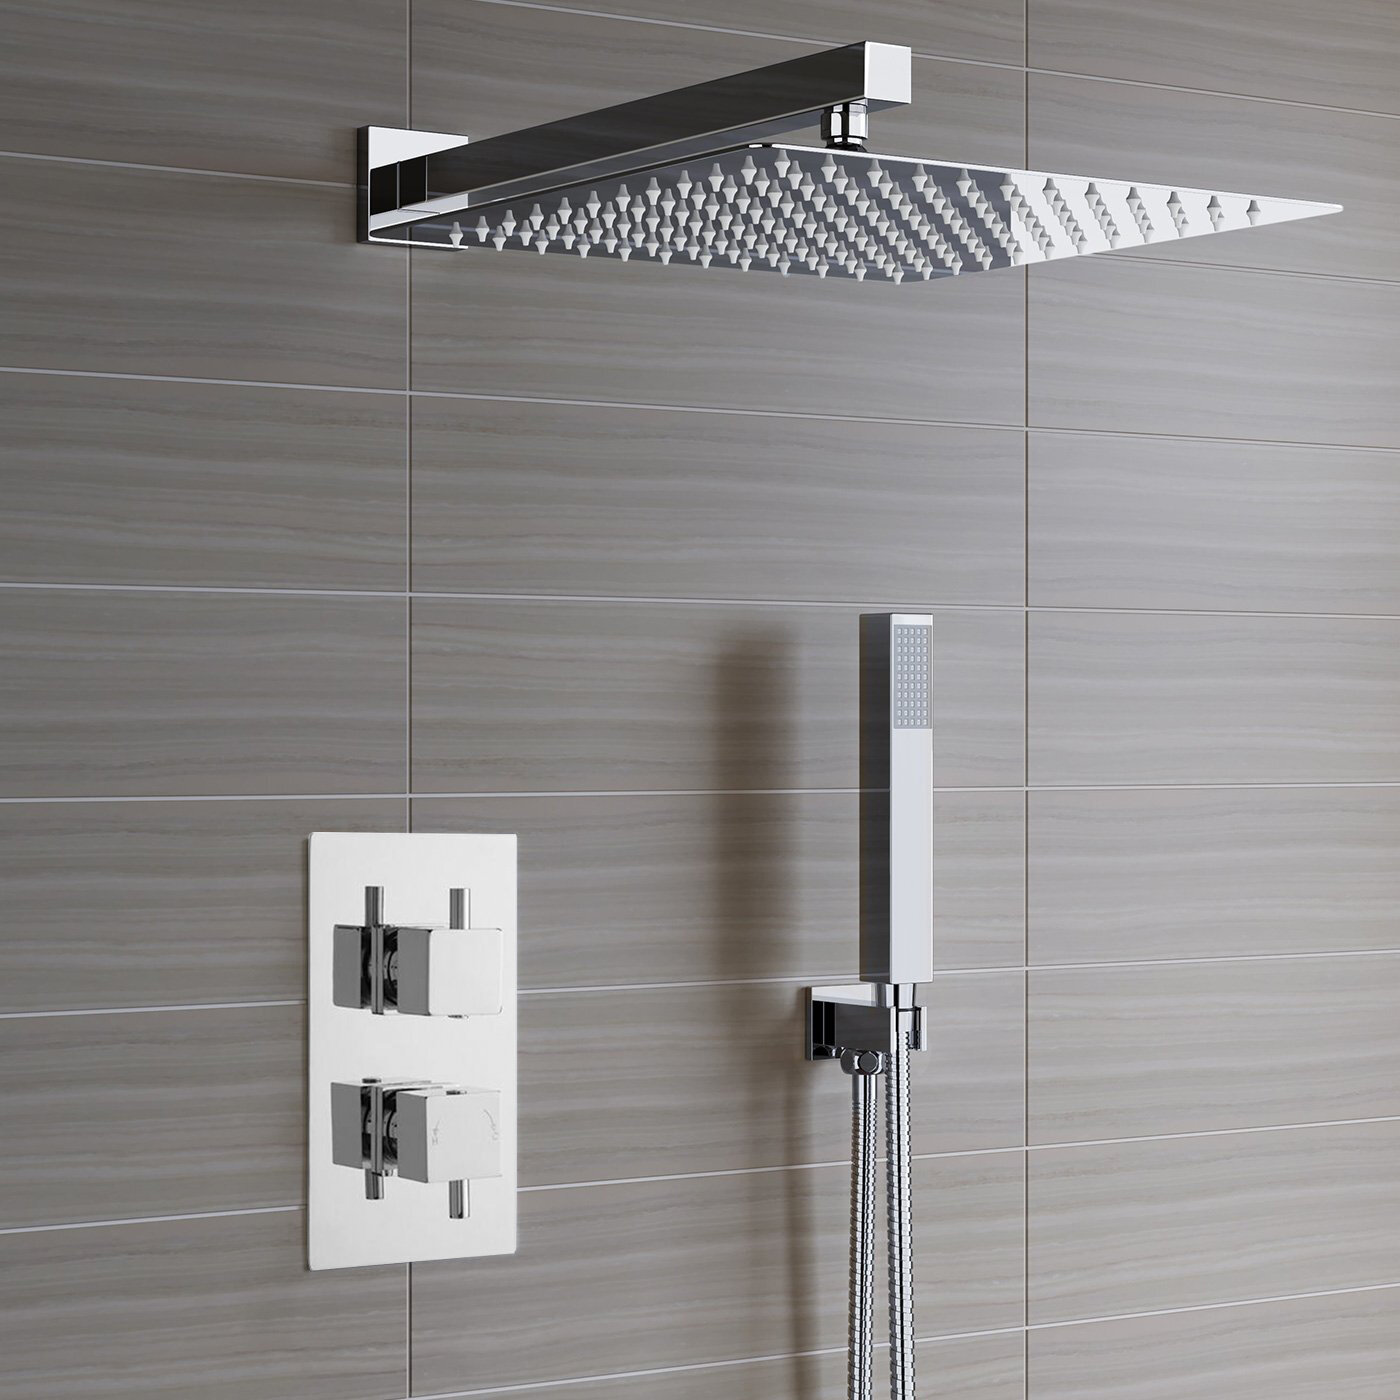 Fontanashowers Lima Ultra Thin Rain Head Thermostatic Complete Shower System With Rough In Valve Wayfair